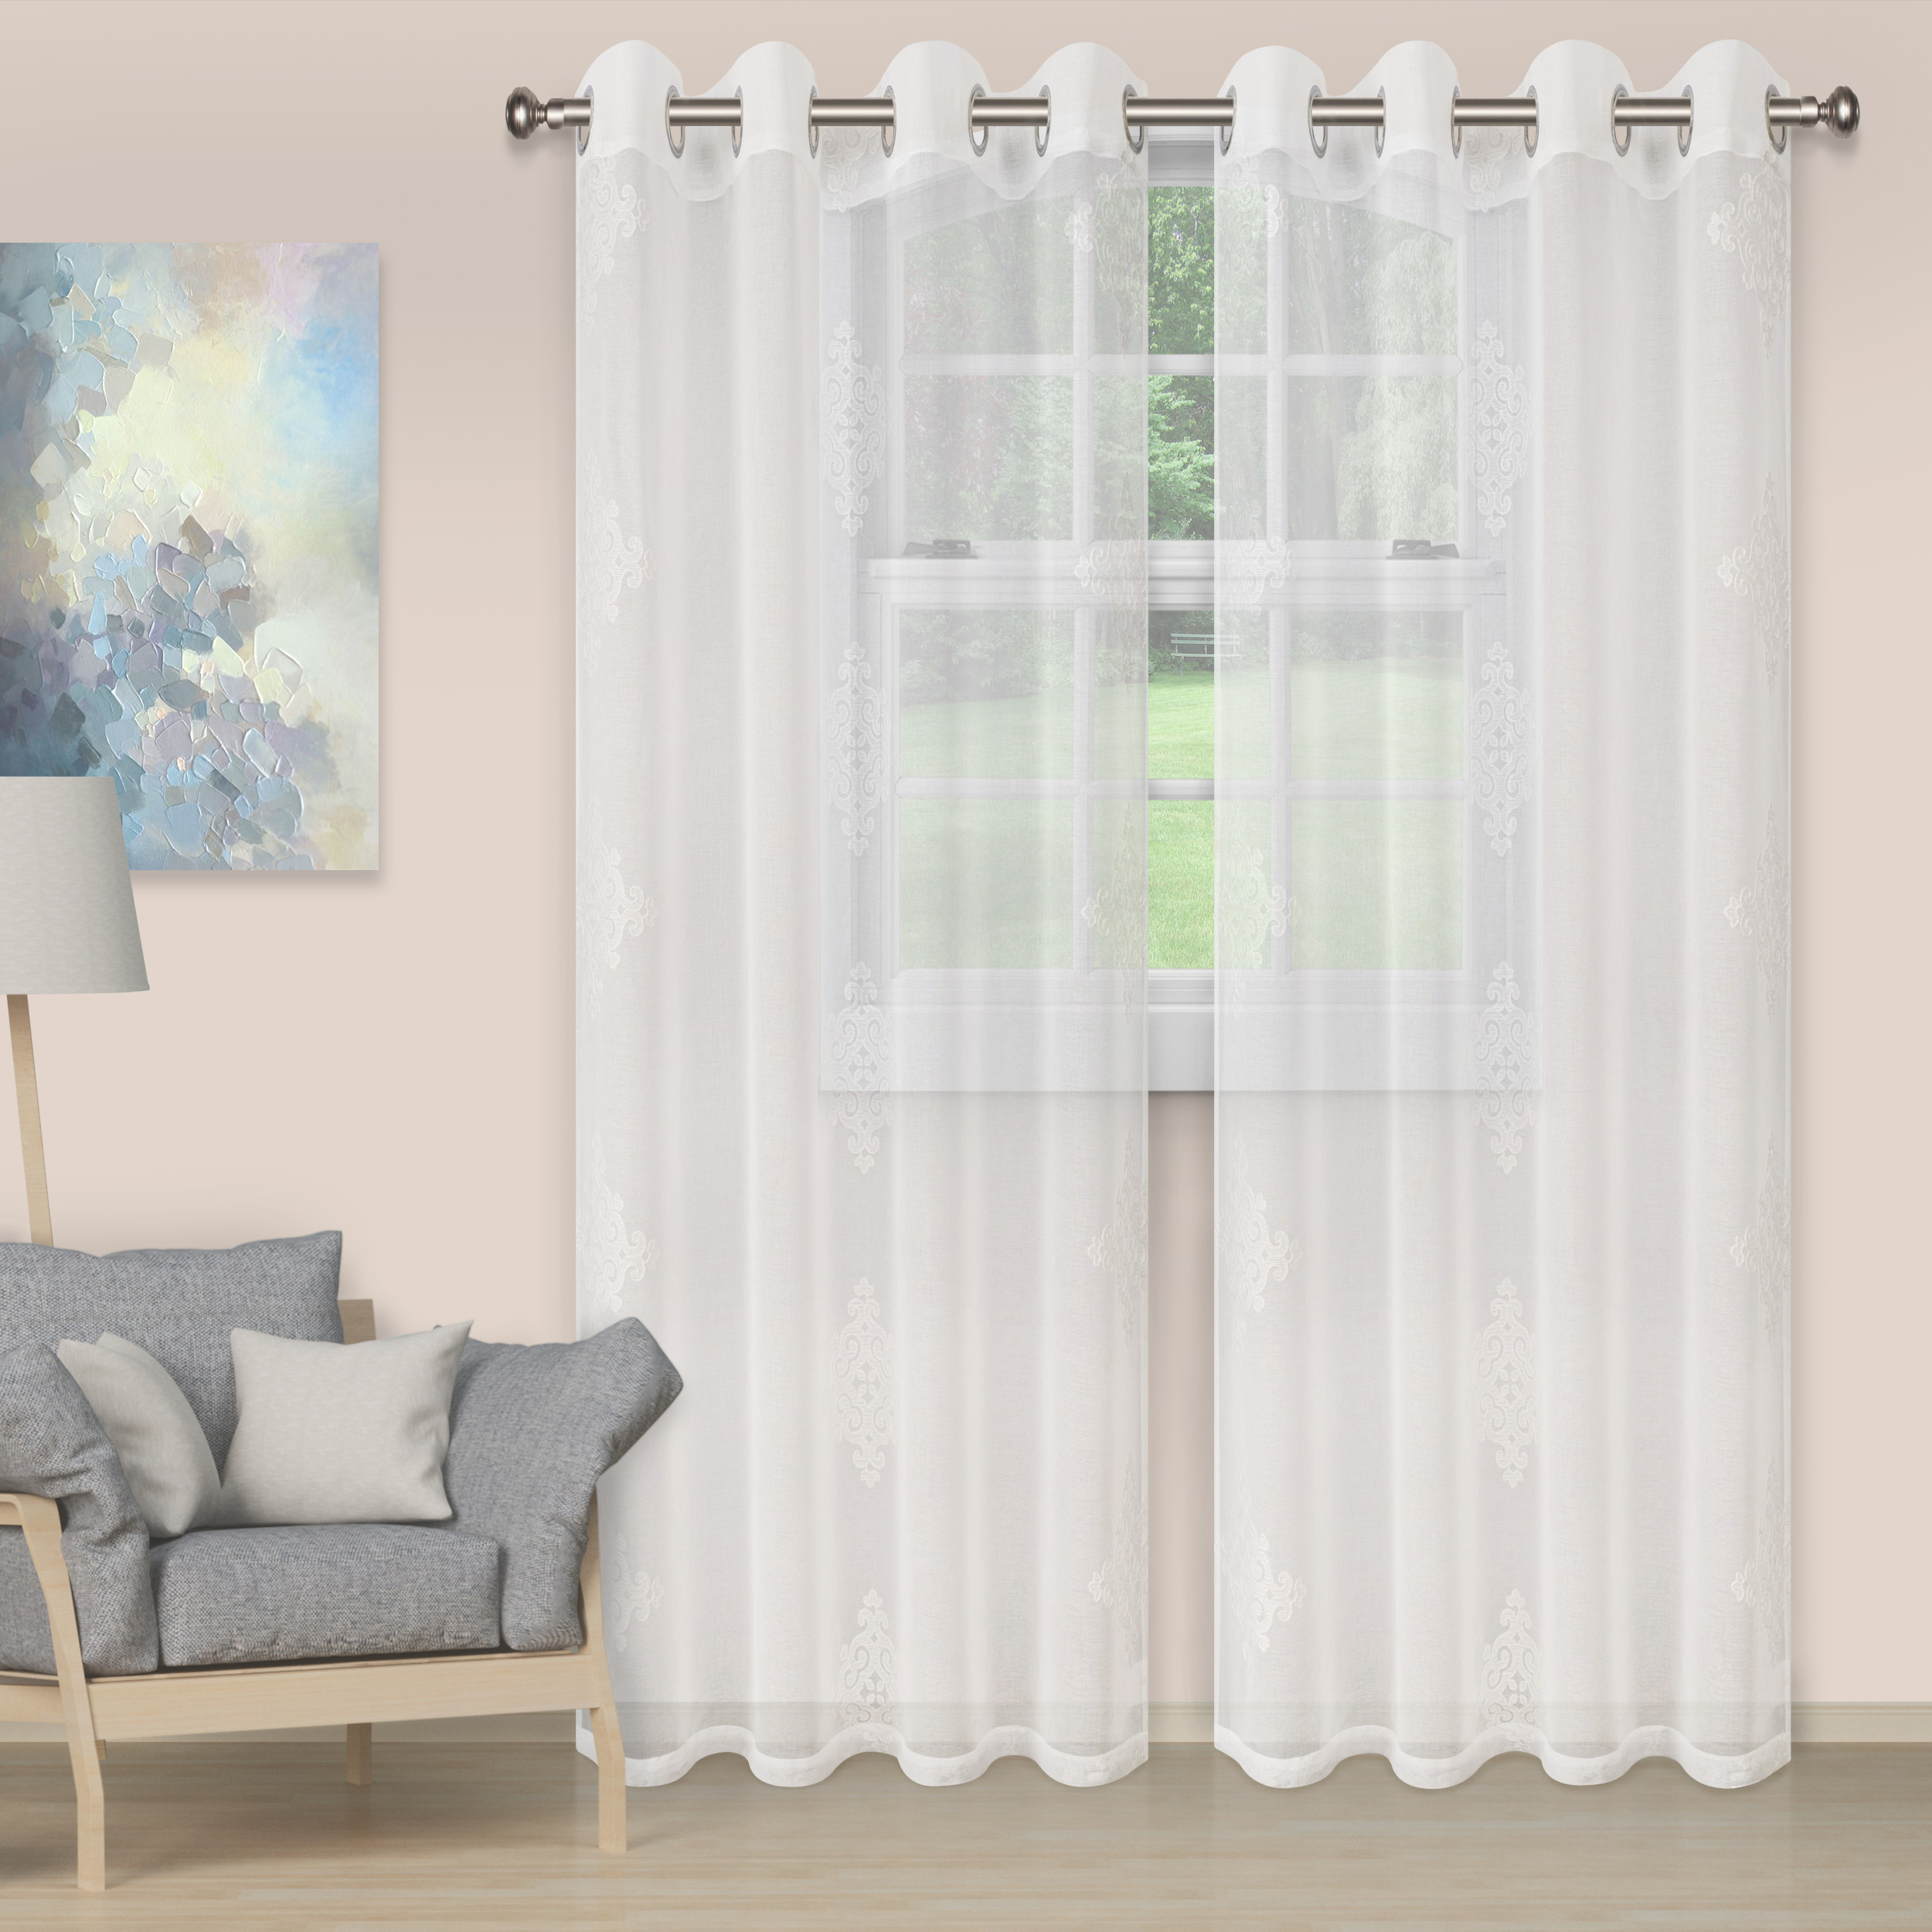 Embroidered Curtain Panels Walmart